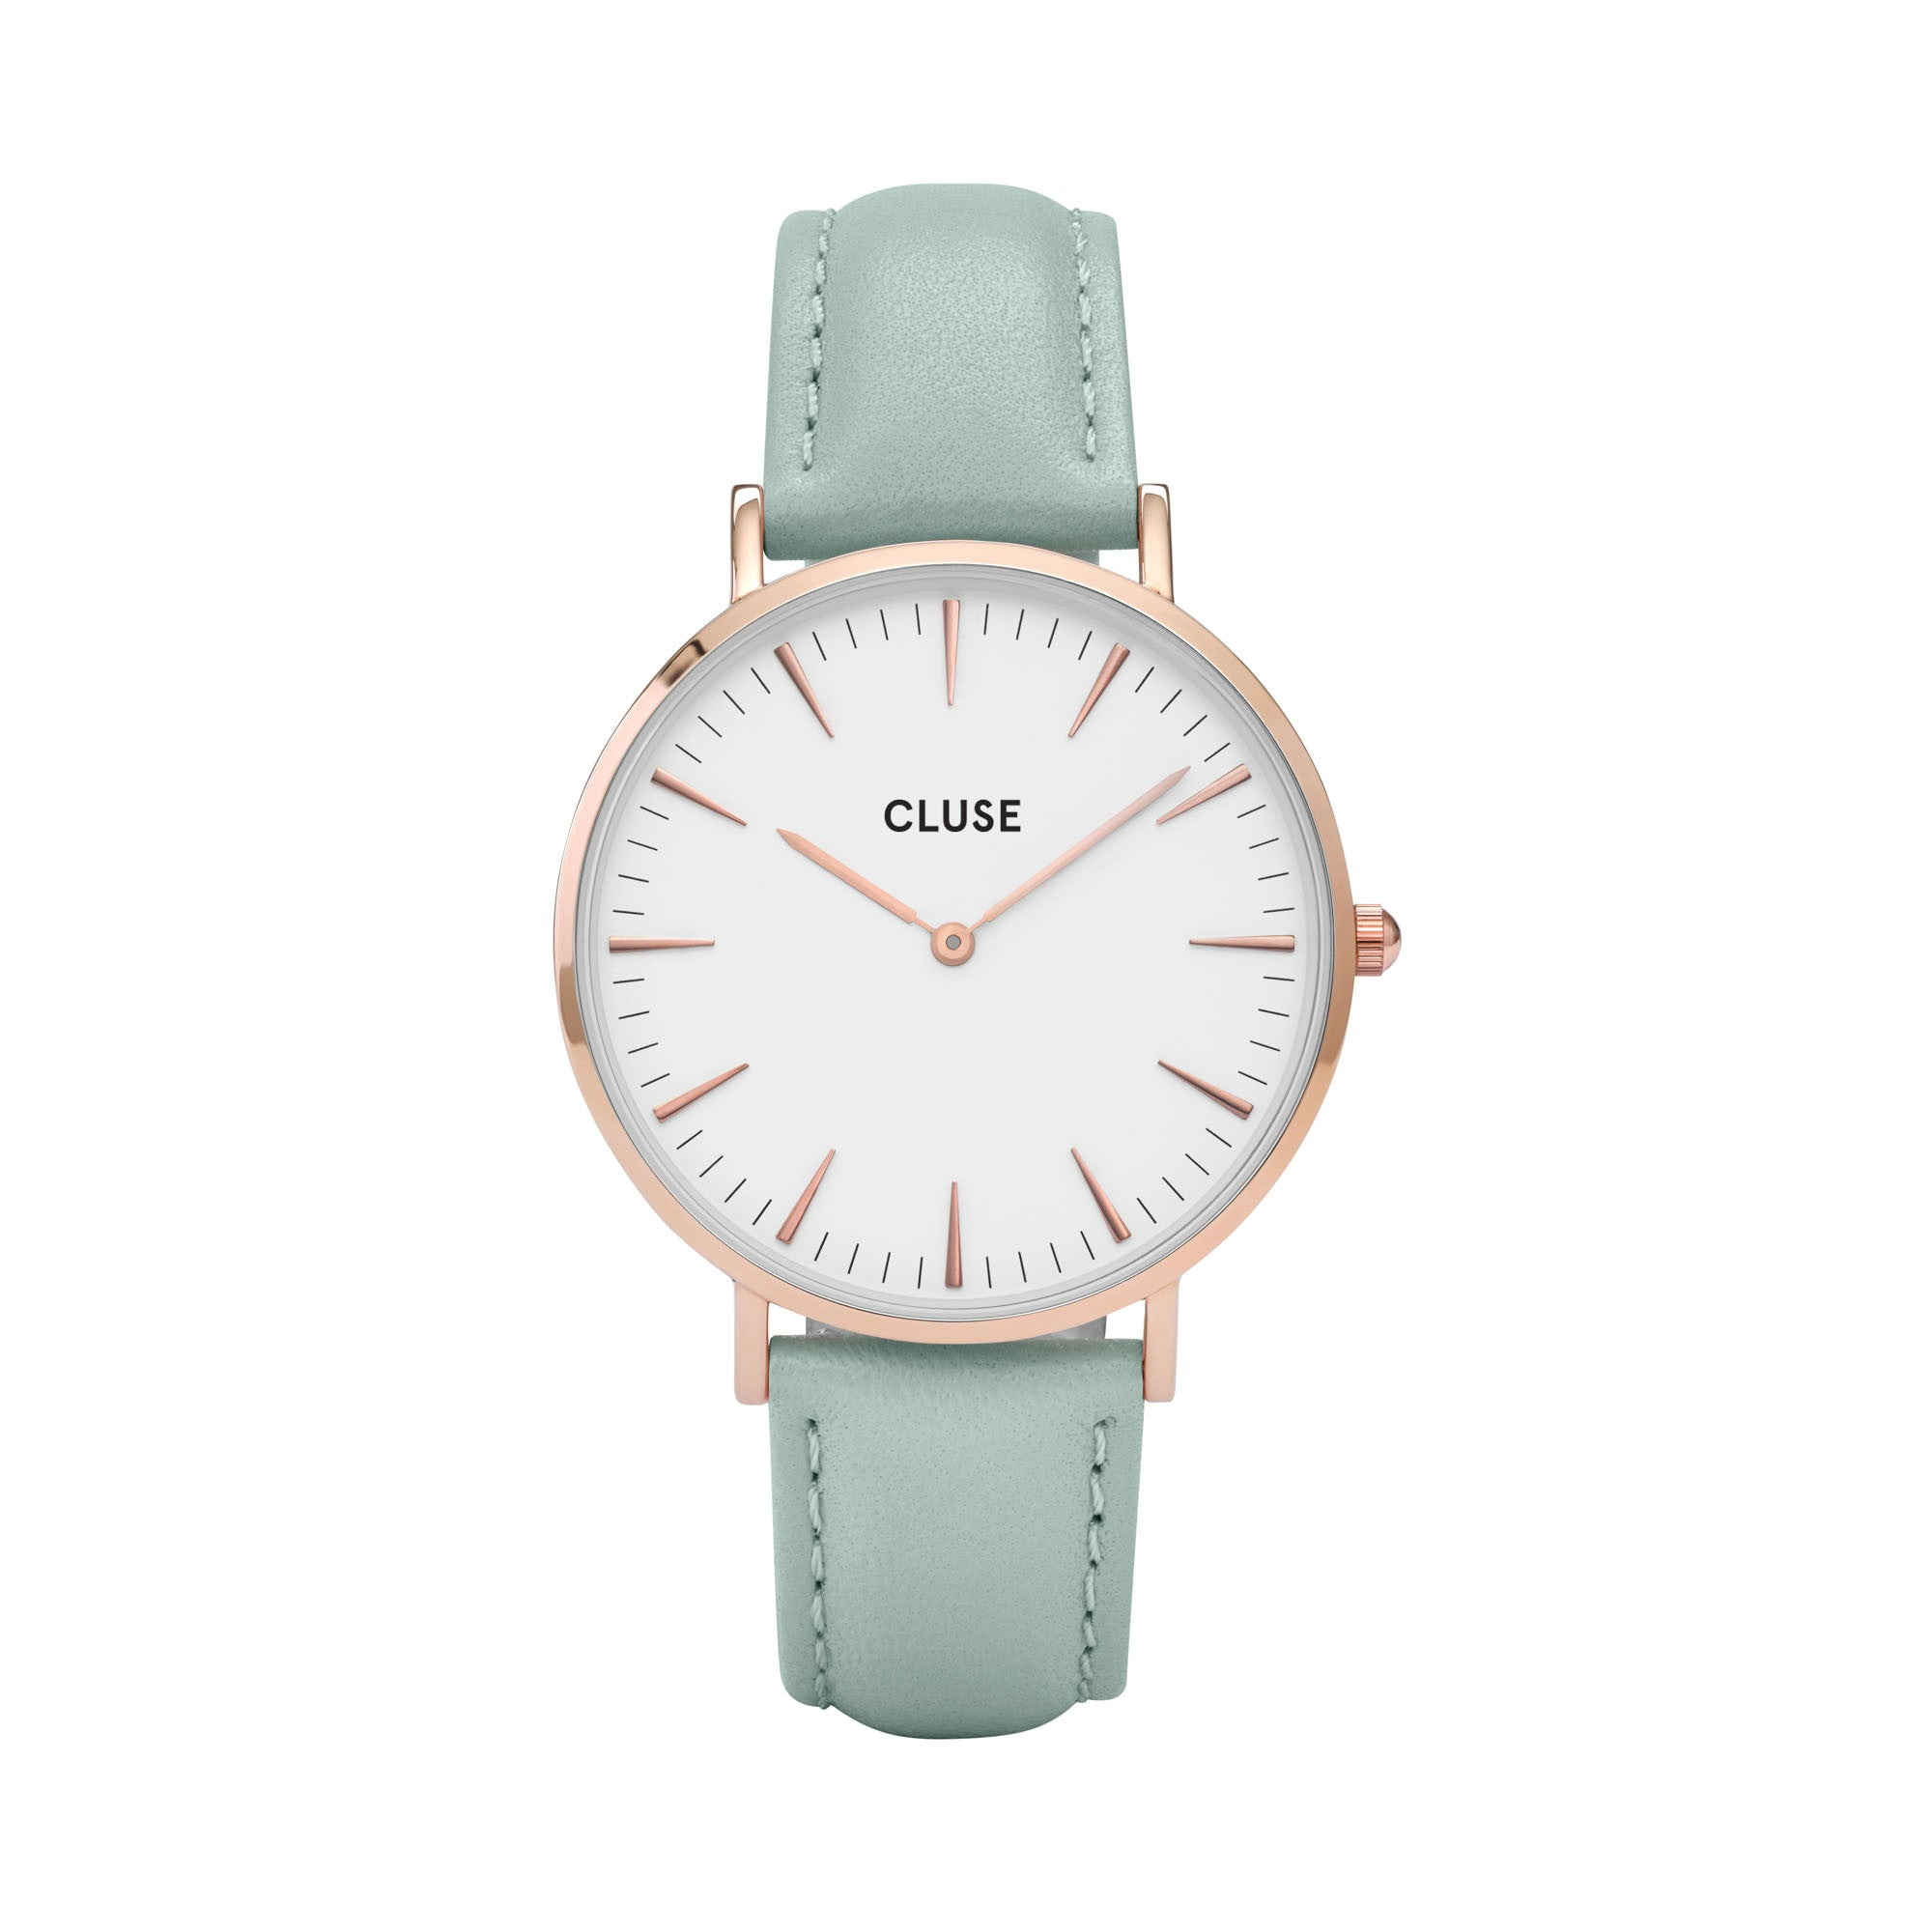 Cluse La Bohème Rose Gold White/Pastel Mint - WATCHES - Cluse - MODESPOT - 1